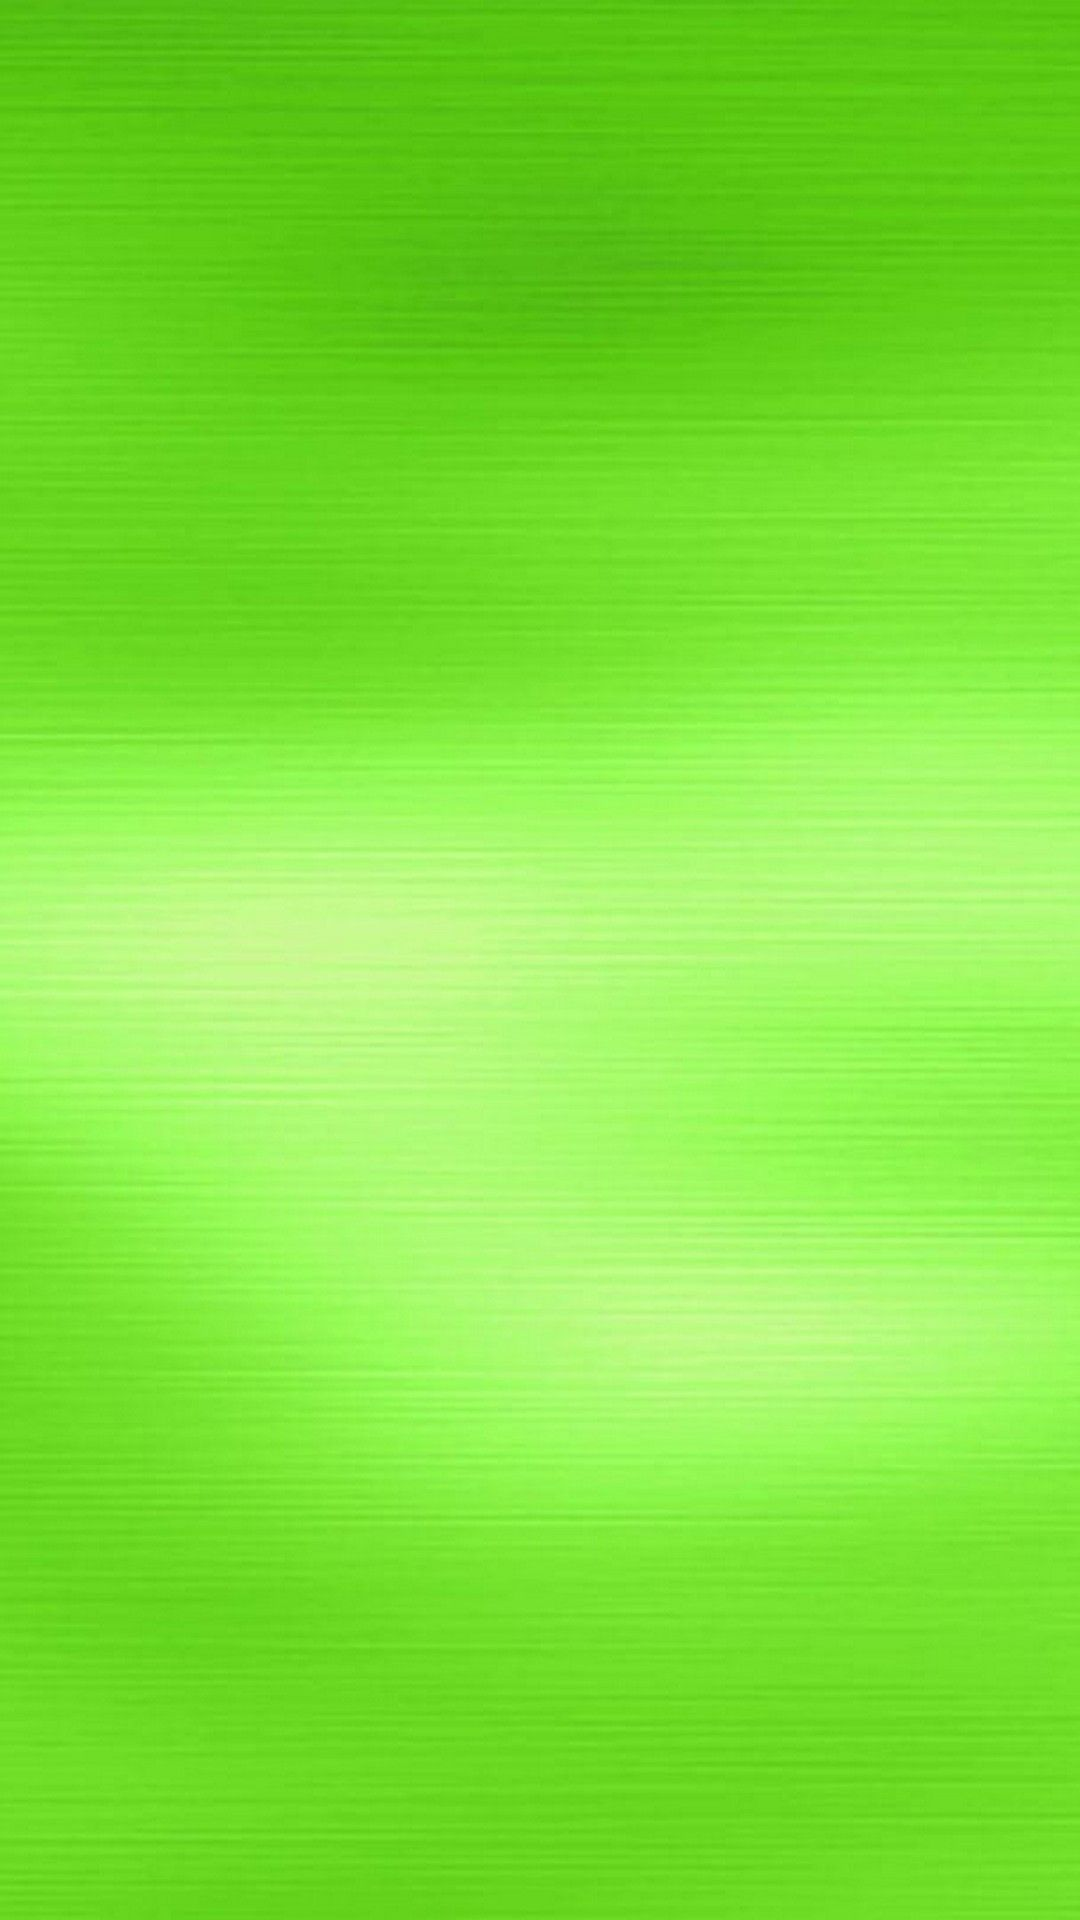 Android Wallpaper Hd Light Green Best Mobile Wallpaper Green Wallpaper Green Photo Wallpaper Downloads